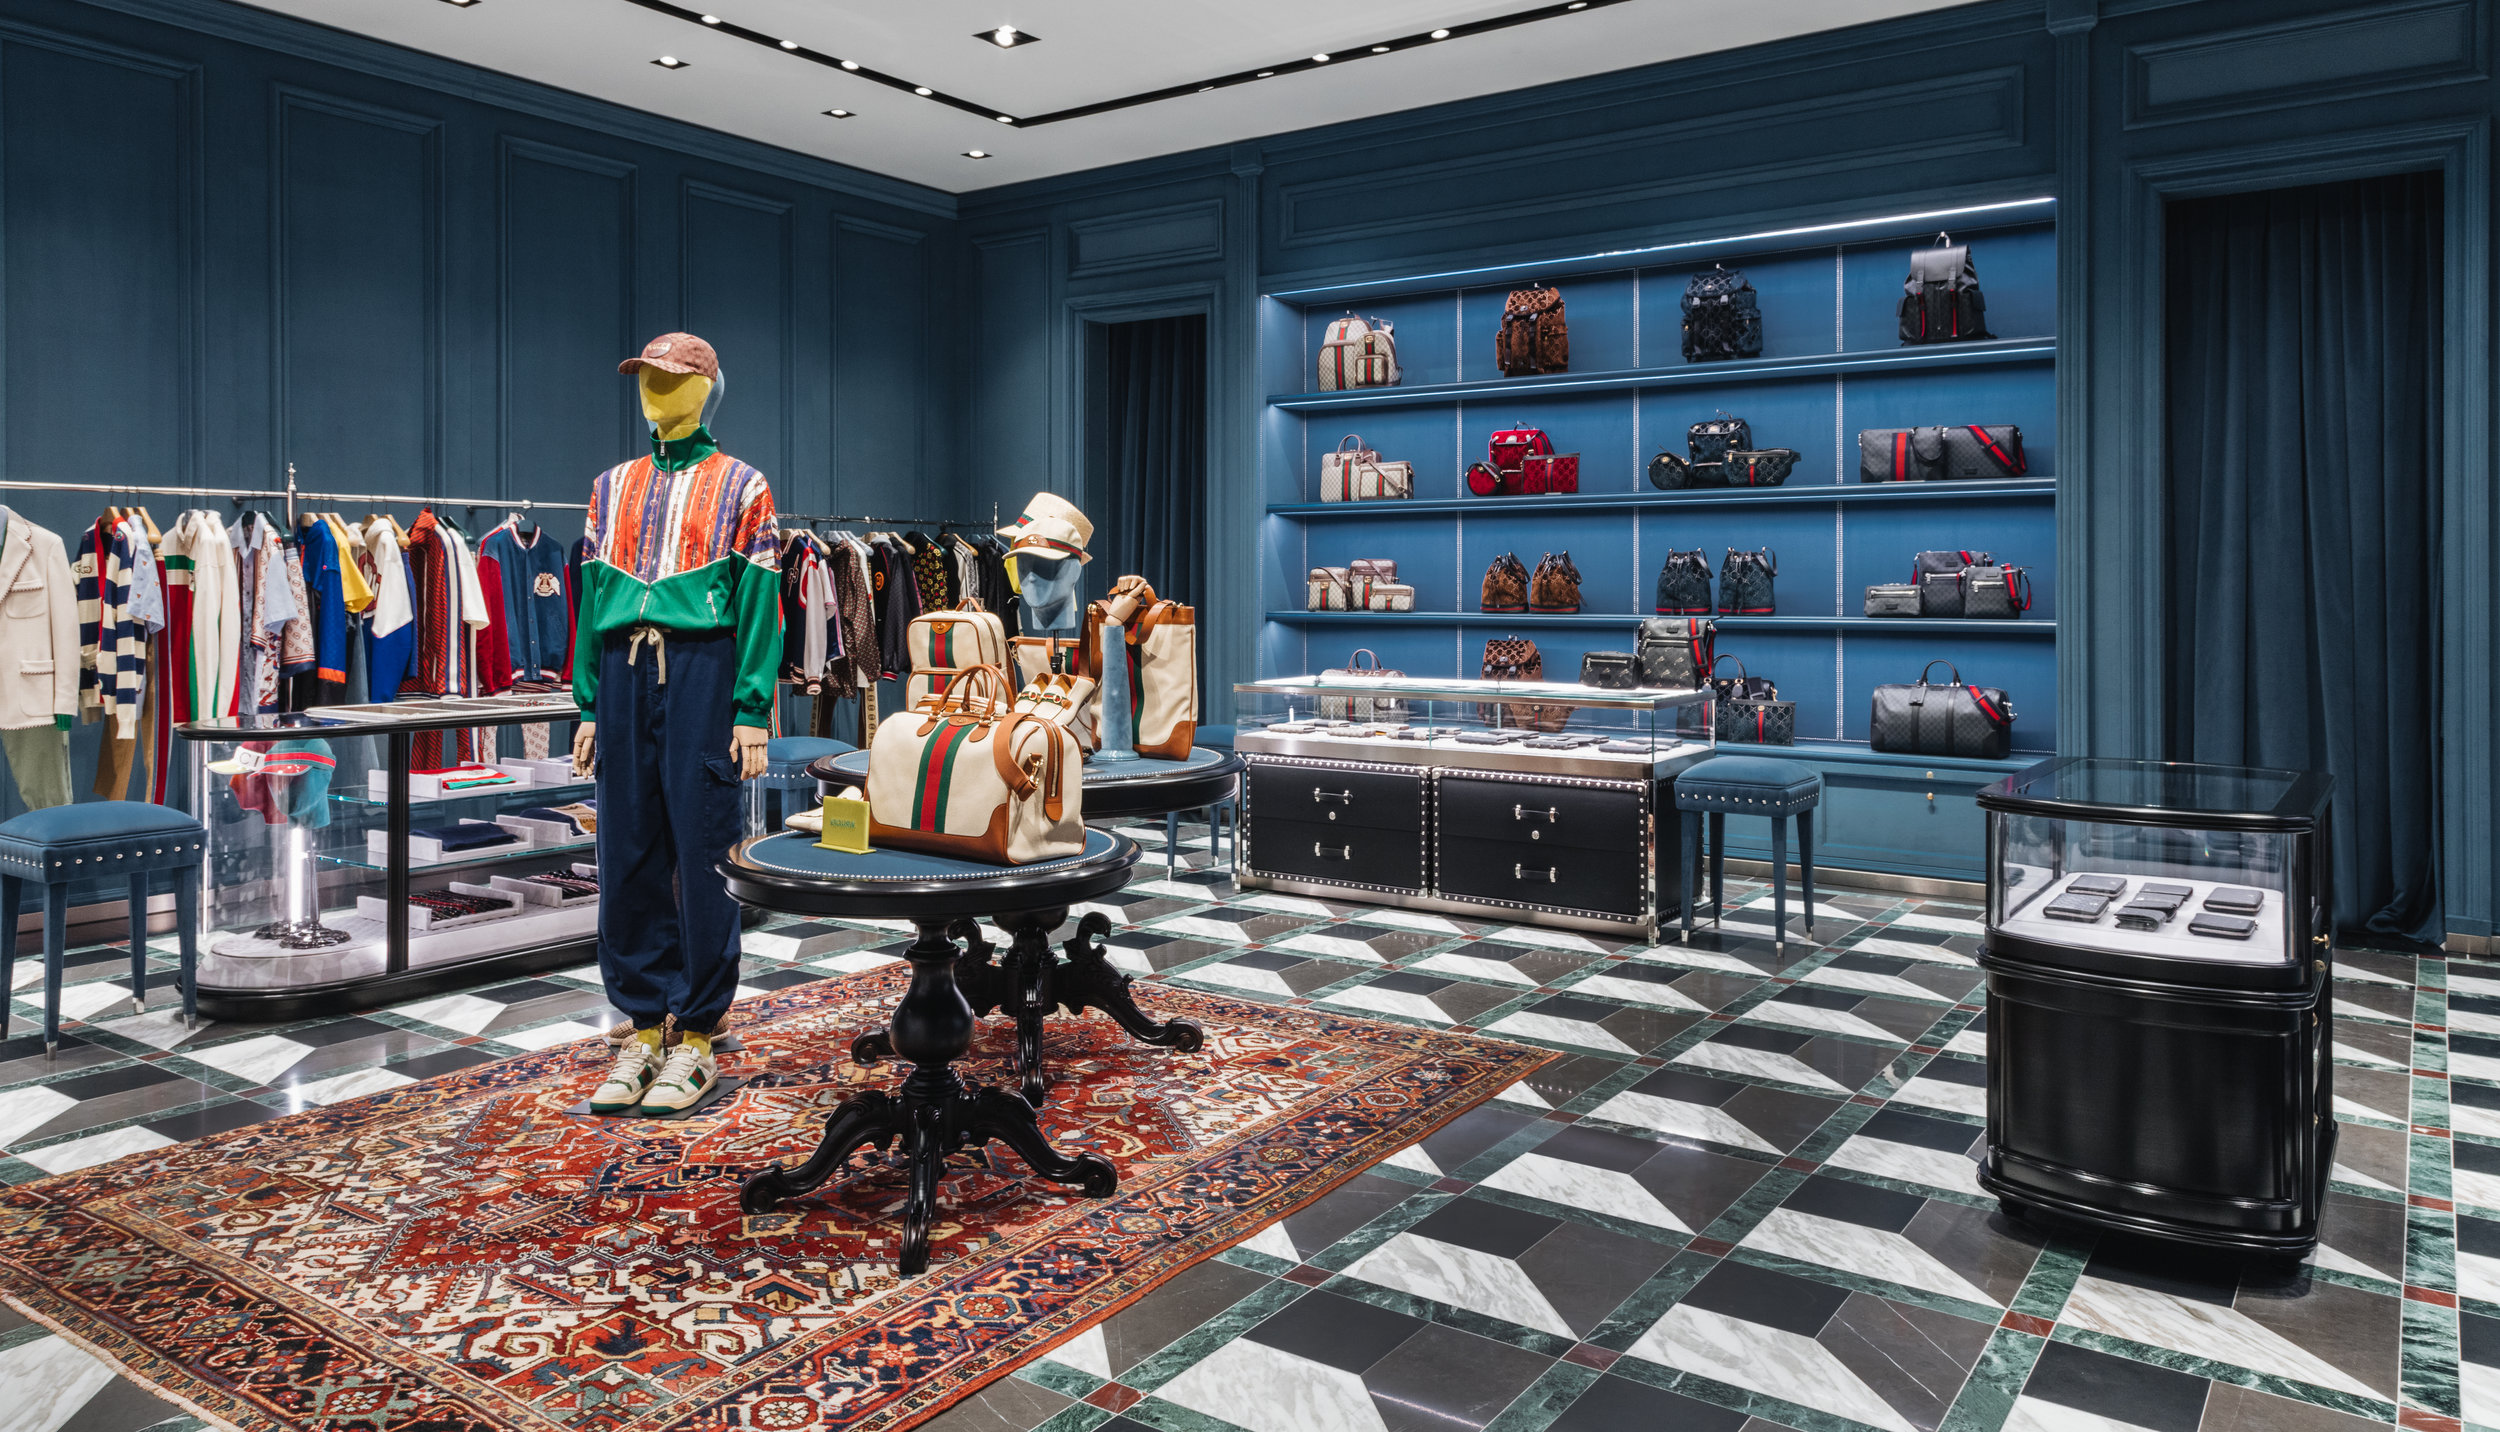 Another shot of the Men's section. Photo: Gucci